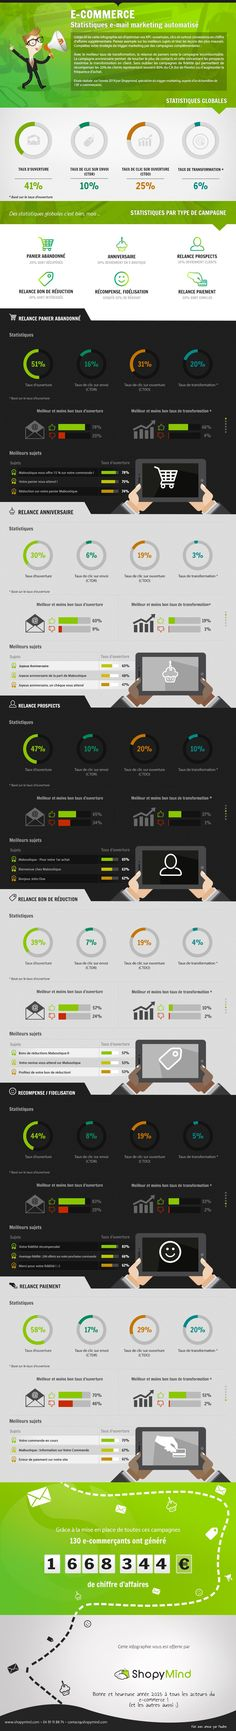 infographie-2015-email-trigger